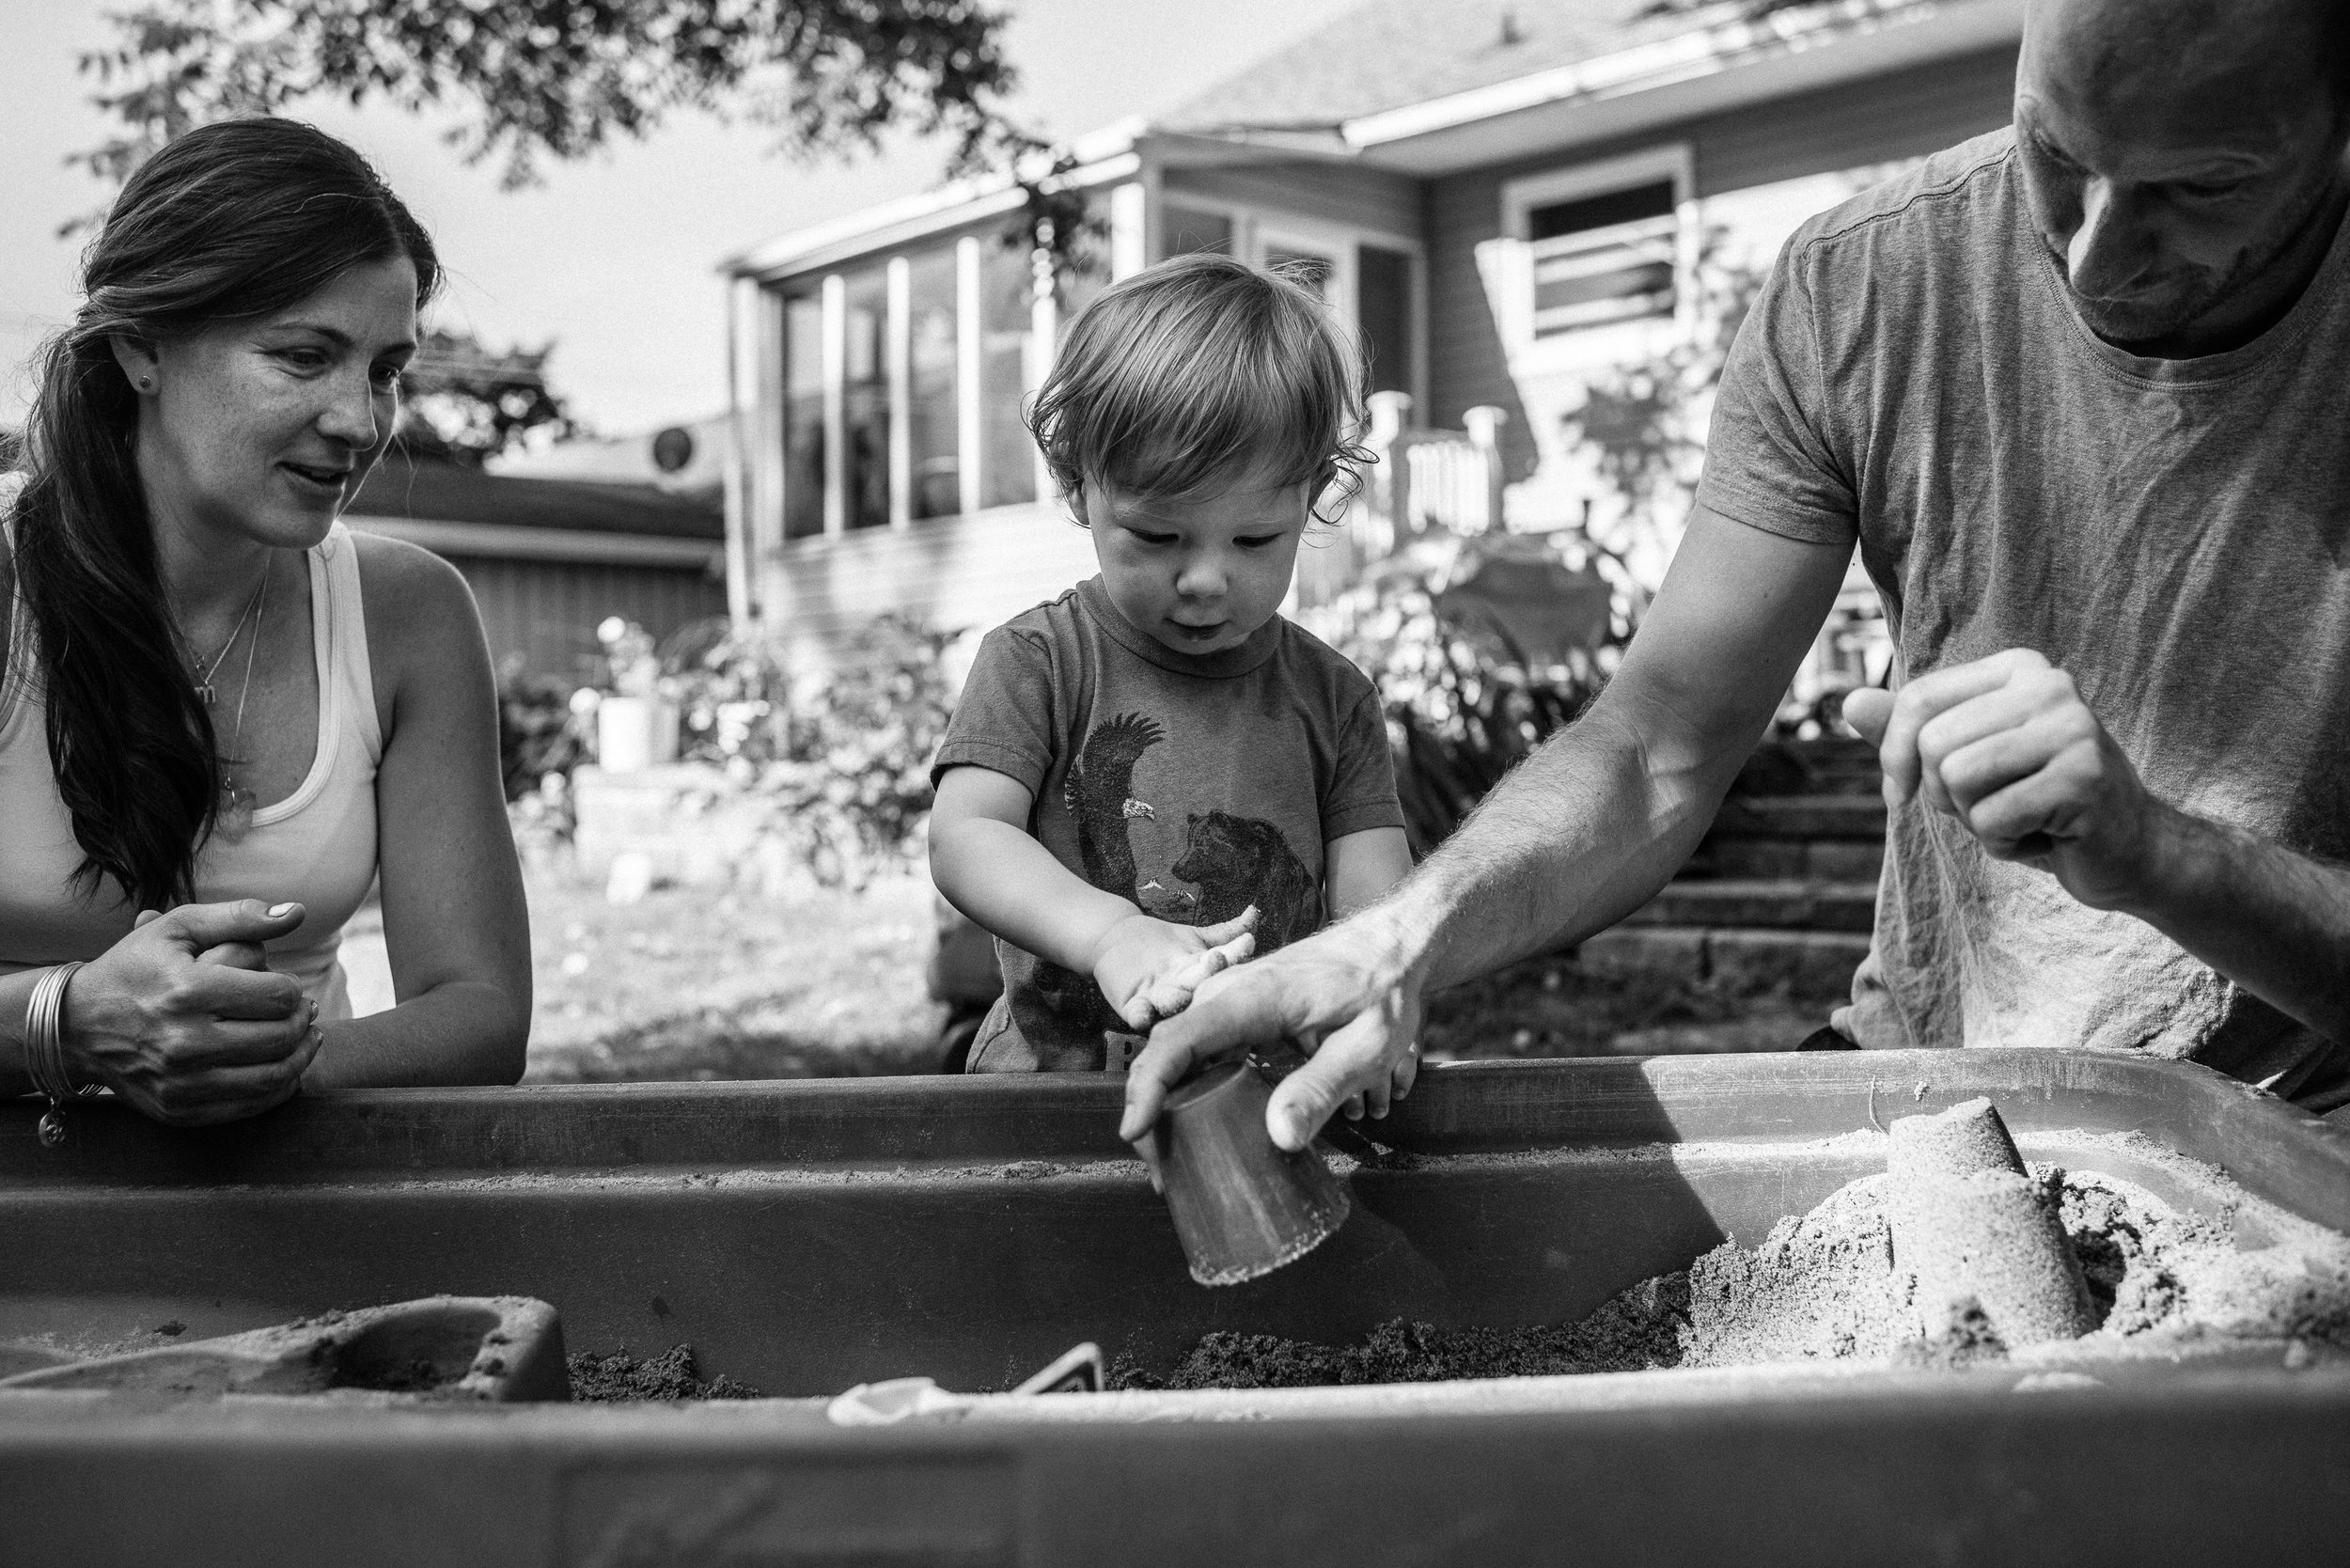 family documentary photography in kingston by viara mileva-090203vm.jpg